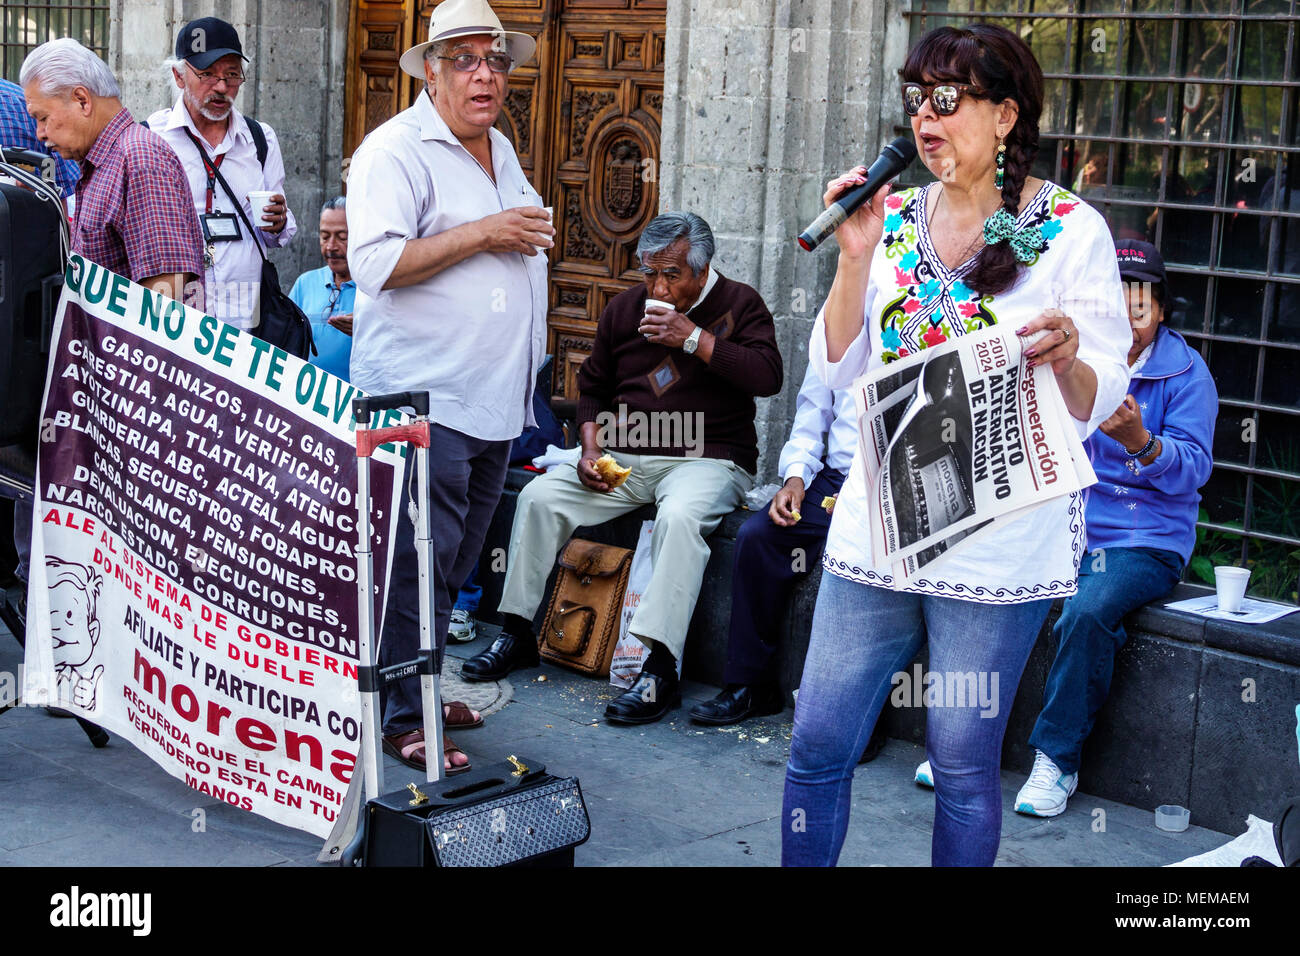 Mexico City Mexico Ciudad de Federal District Distrito DF D.F. CDMX Mexican Hispanic Centro Historico Historic Center Centre Avenida Juarez leftist political rally Movimiento Regeneracion Nacional Morena poster man woman spokeswoman speaker microphone North America American - Stock Image